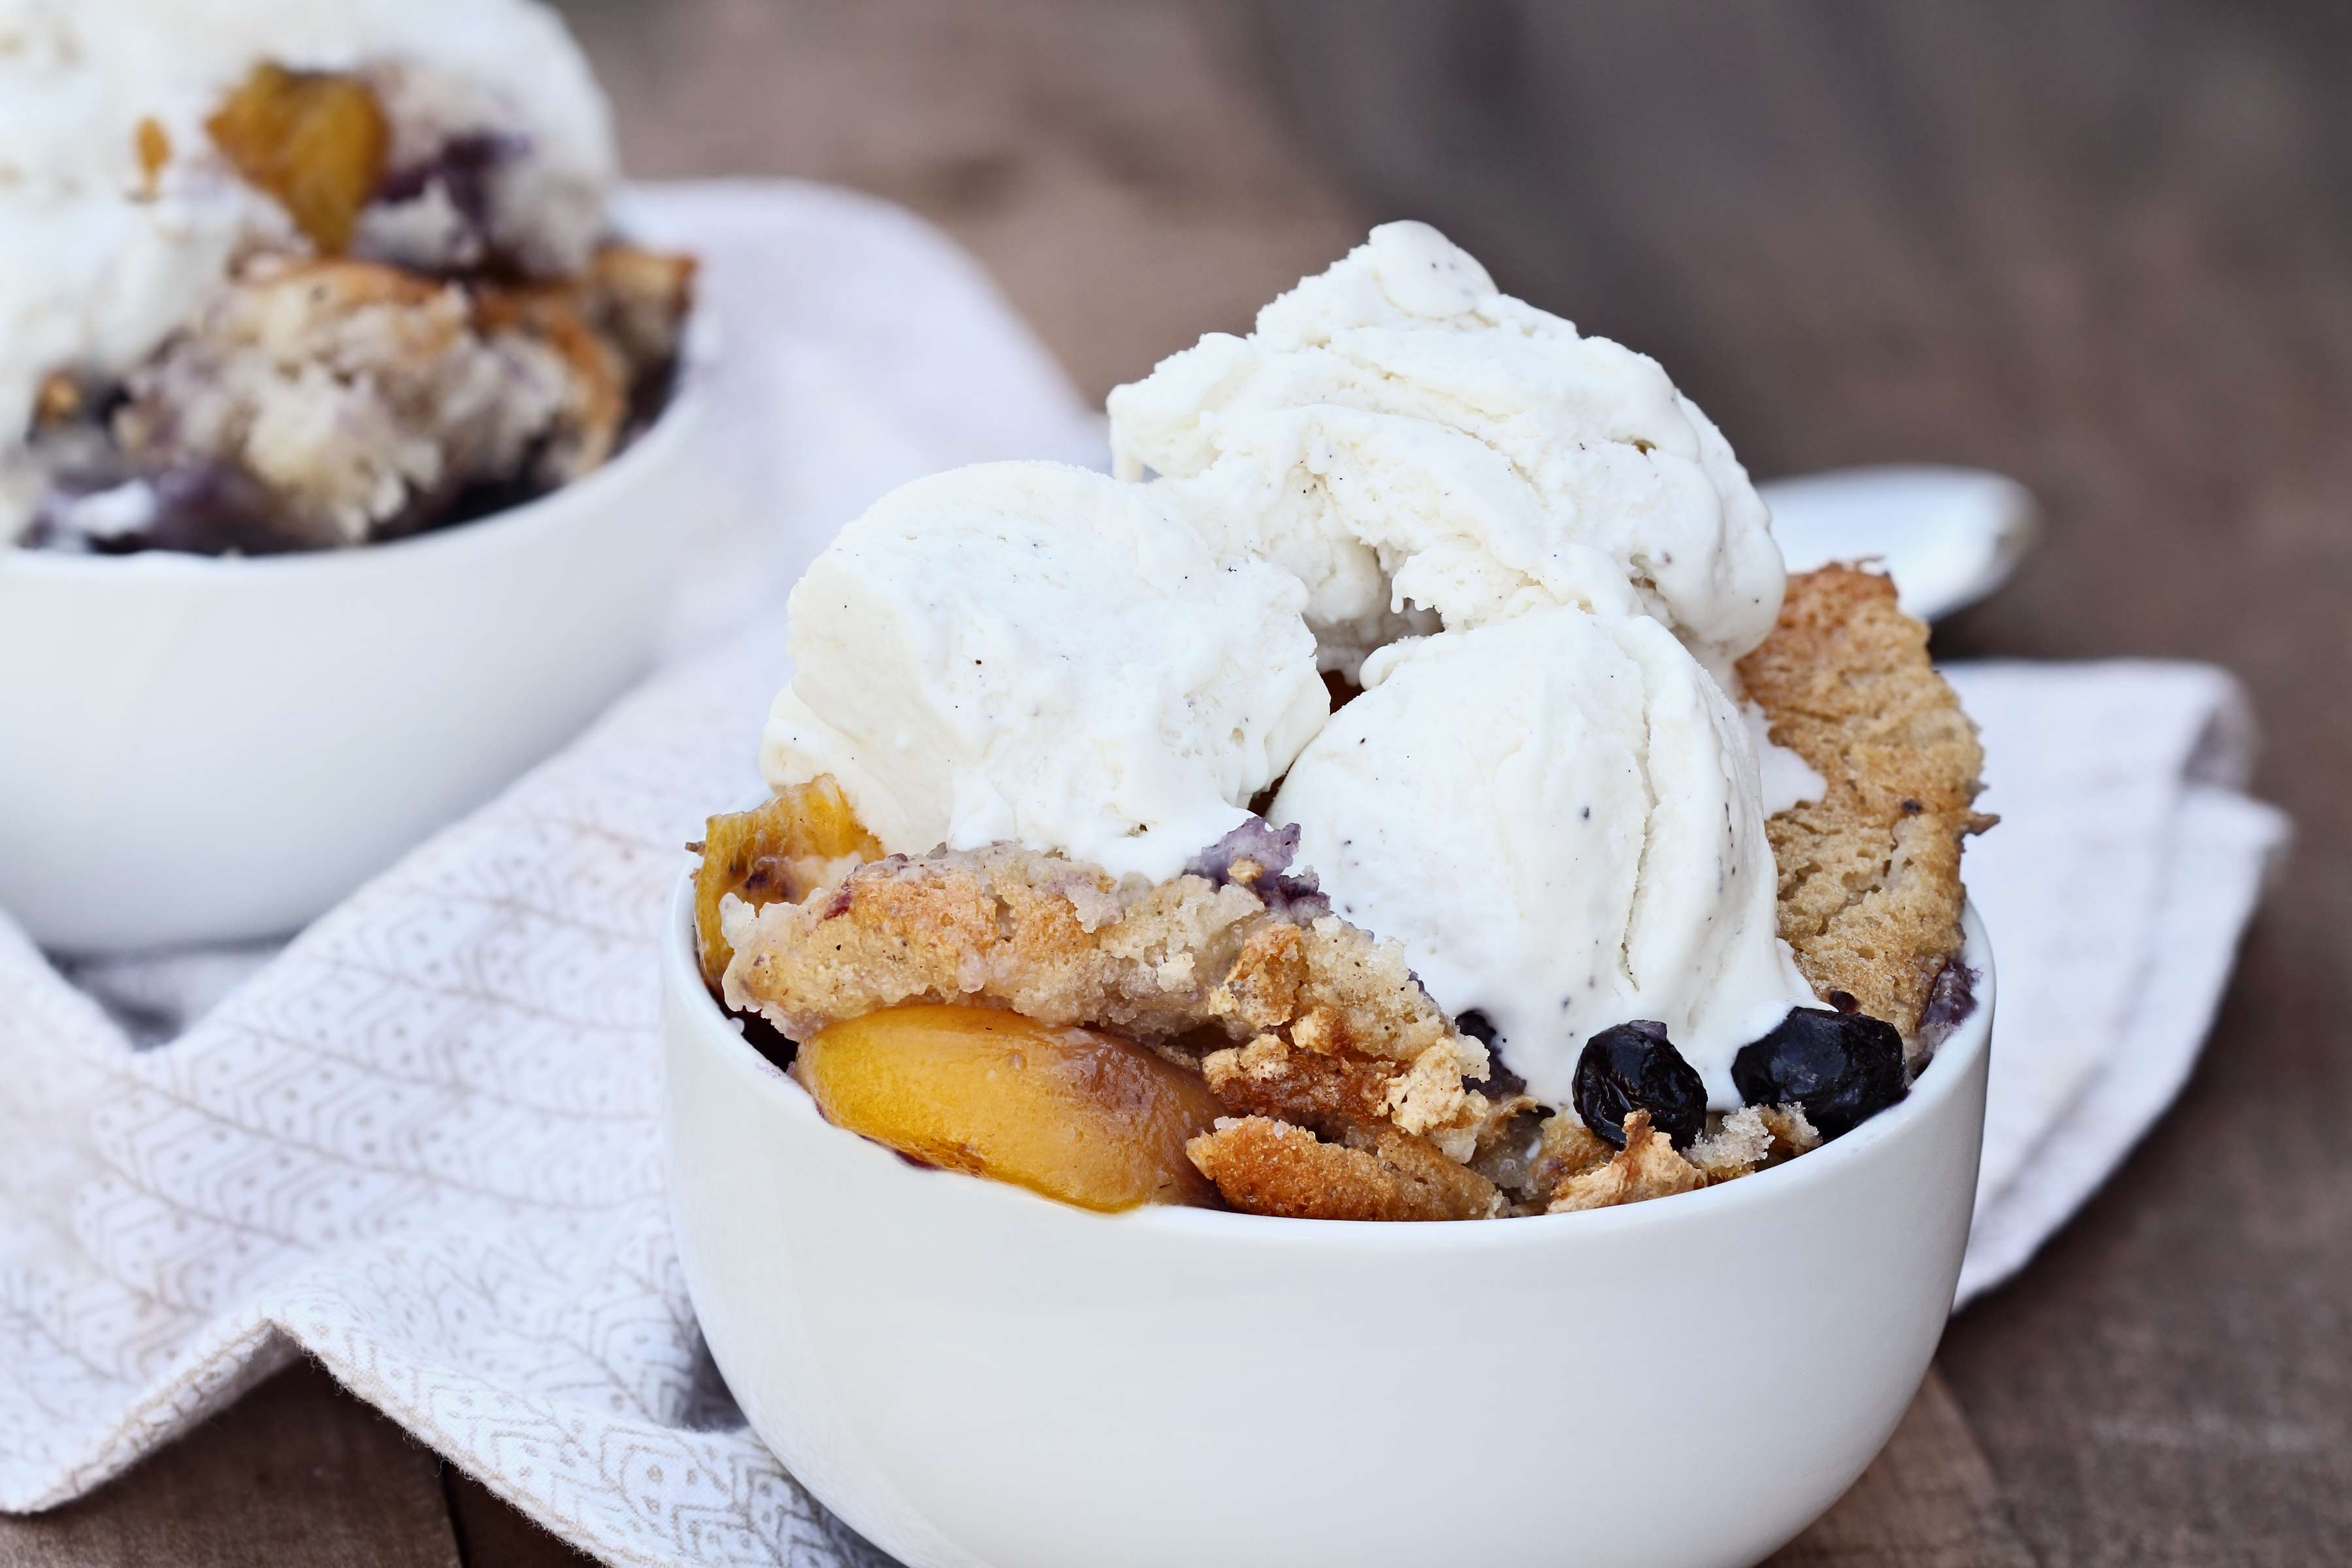 Homemade Peach And Blueberry Cobbler Recipe | CHEFBear.net